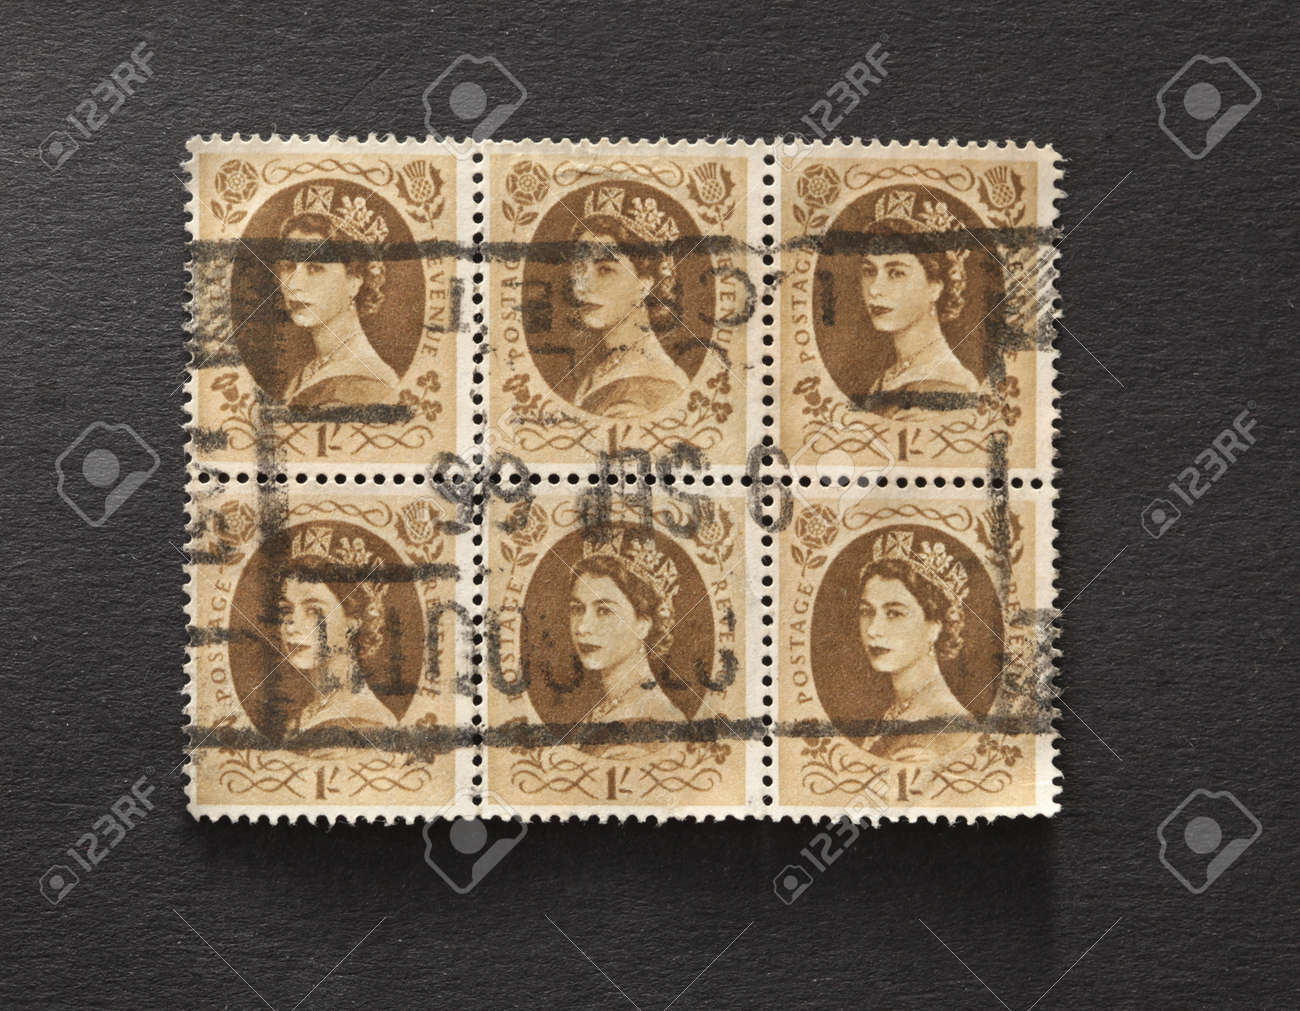 UNITED KINGDOM - CIRCA 1952 to 1965: Six English One Shilling Brown Used Postage Stamps on a block  showing Portrait of Queen Elizabeth 2nd, circa 1952 to 1965  Stock Photo - 11970897